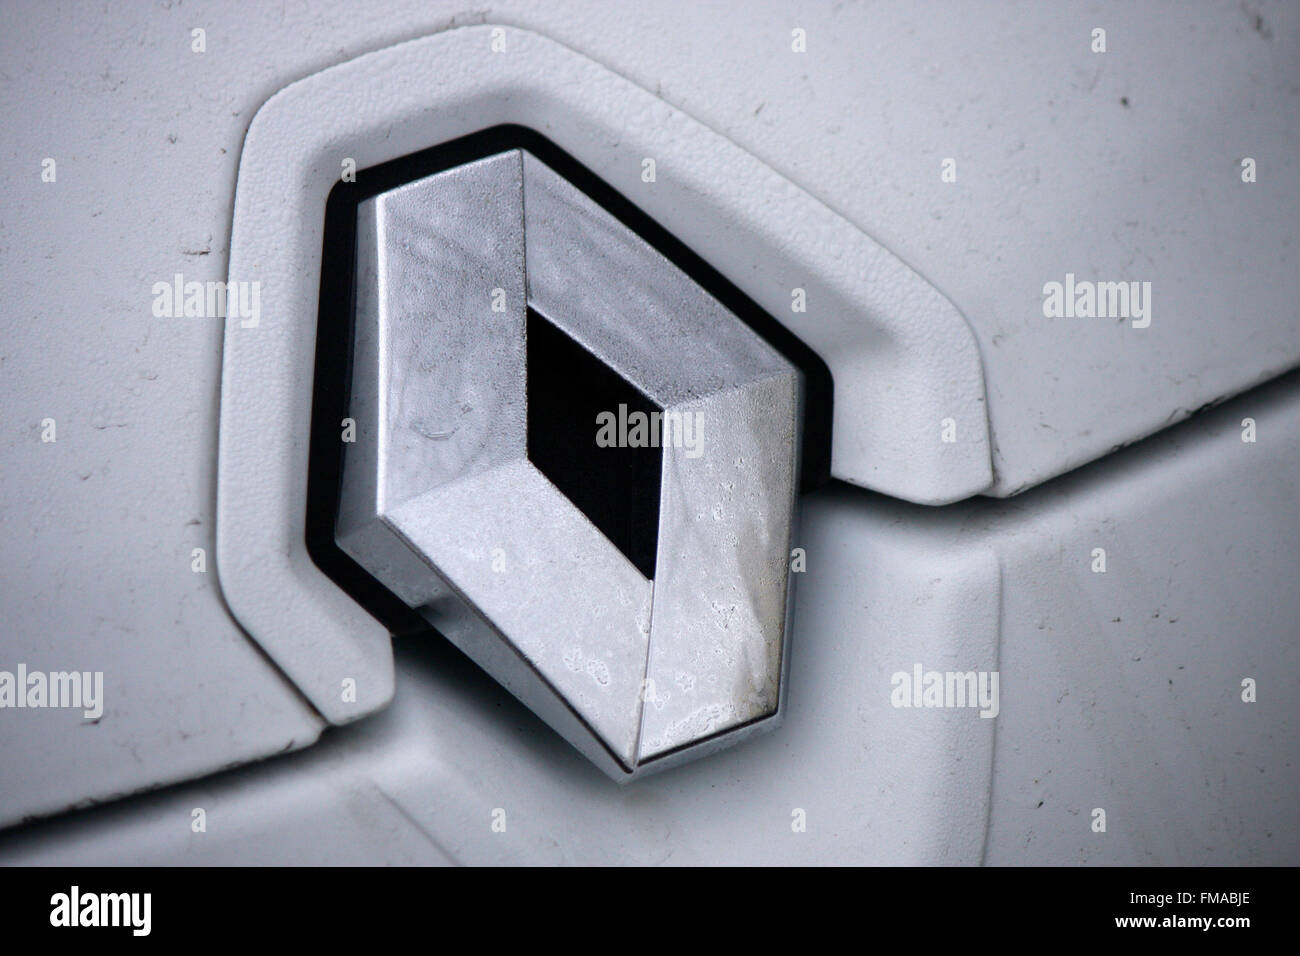 Renault Logo Stock Photos Images Alamy Espace Je Wiring Diagram Markenname Dezember 2013 Berlin